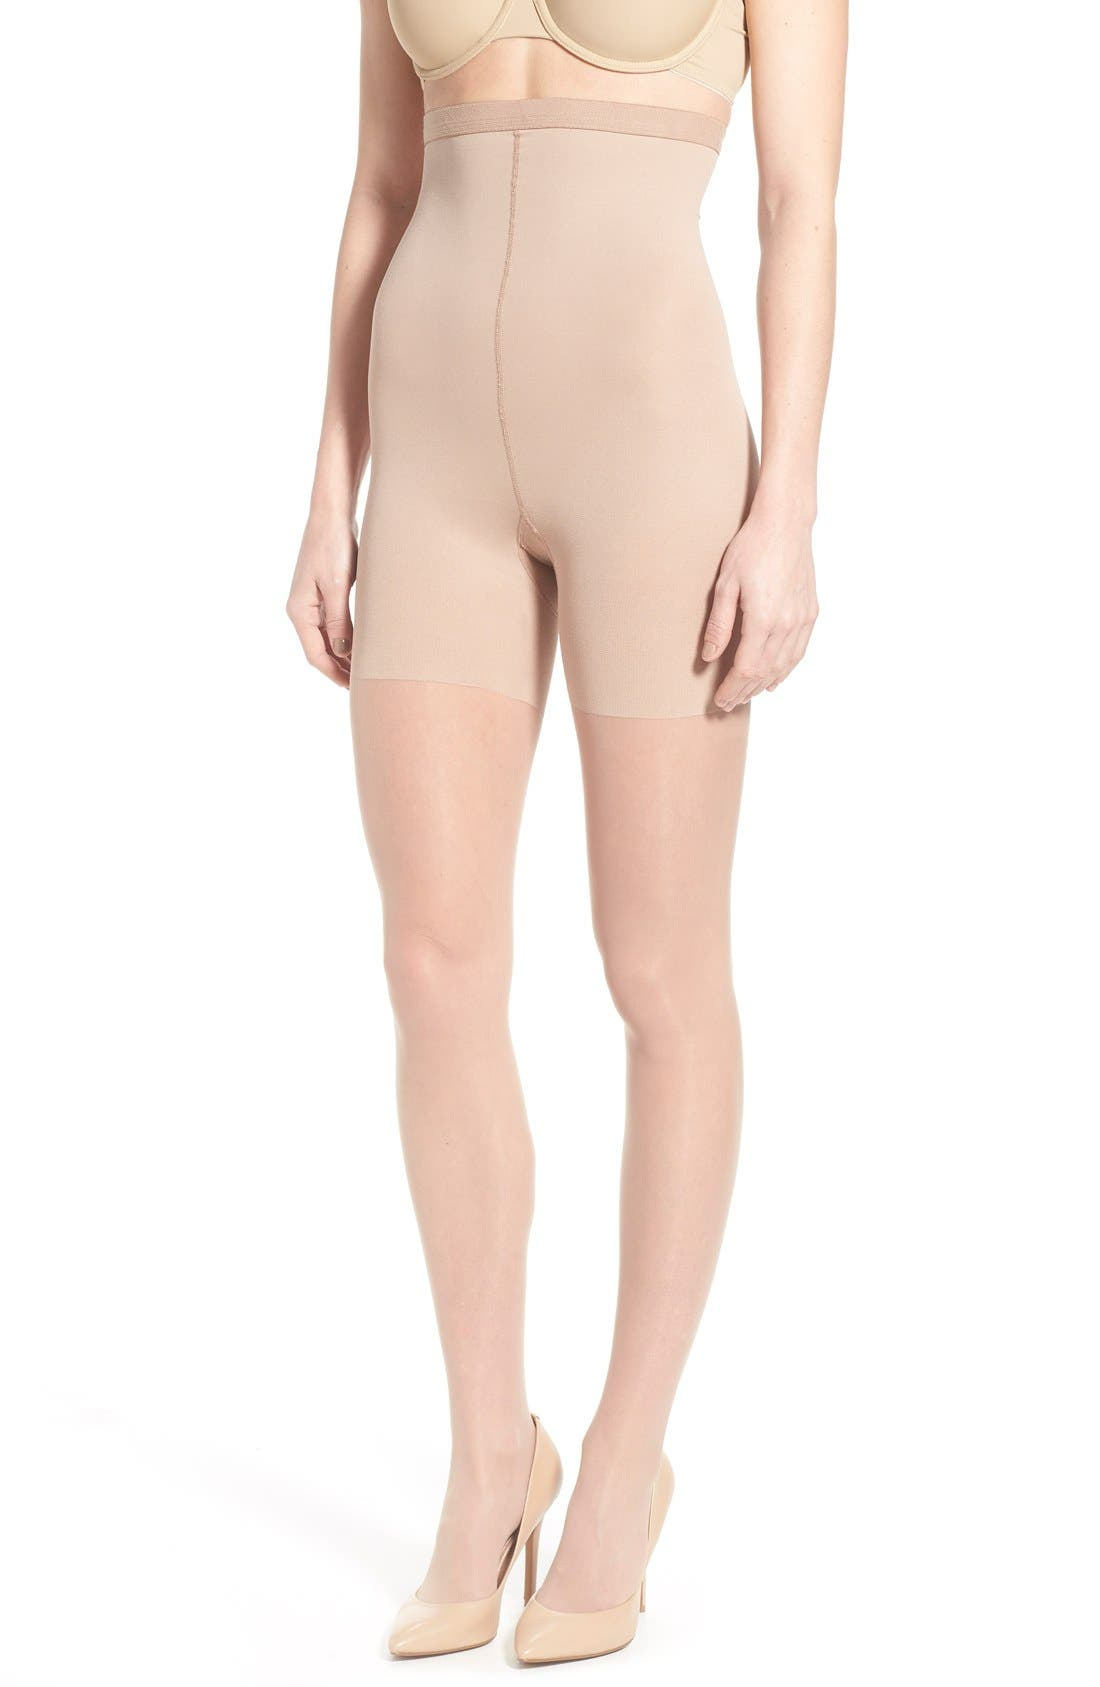 Luxe High Waist Shaping Pantyhose,                         Main,                         color, 250